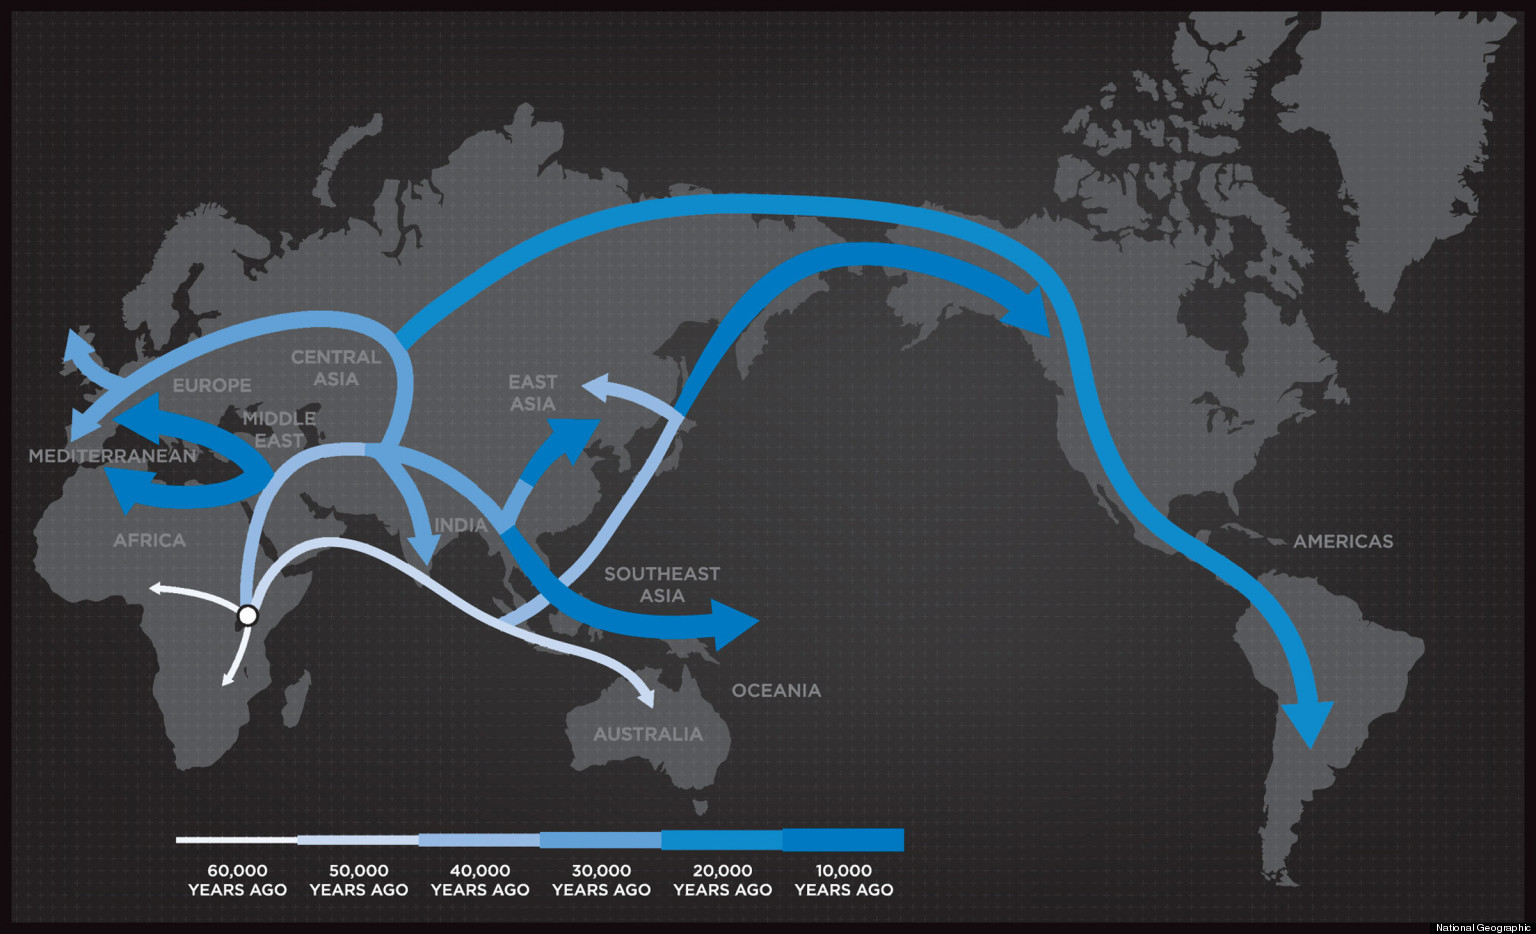 The Genographic Project is seeking to chart new knowledge about the migratory history of the human species by using sophisticated laboratory and computer analysis of DNA contributed by hundreds of thousands of people from around the world.